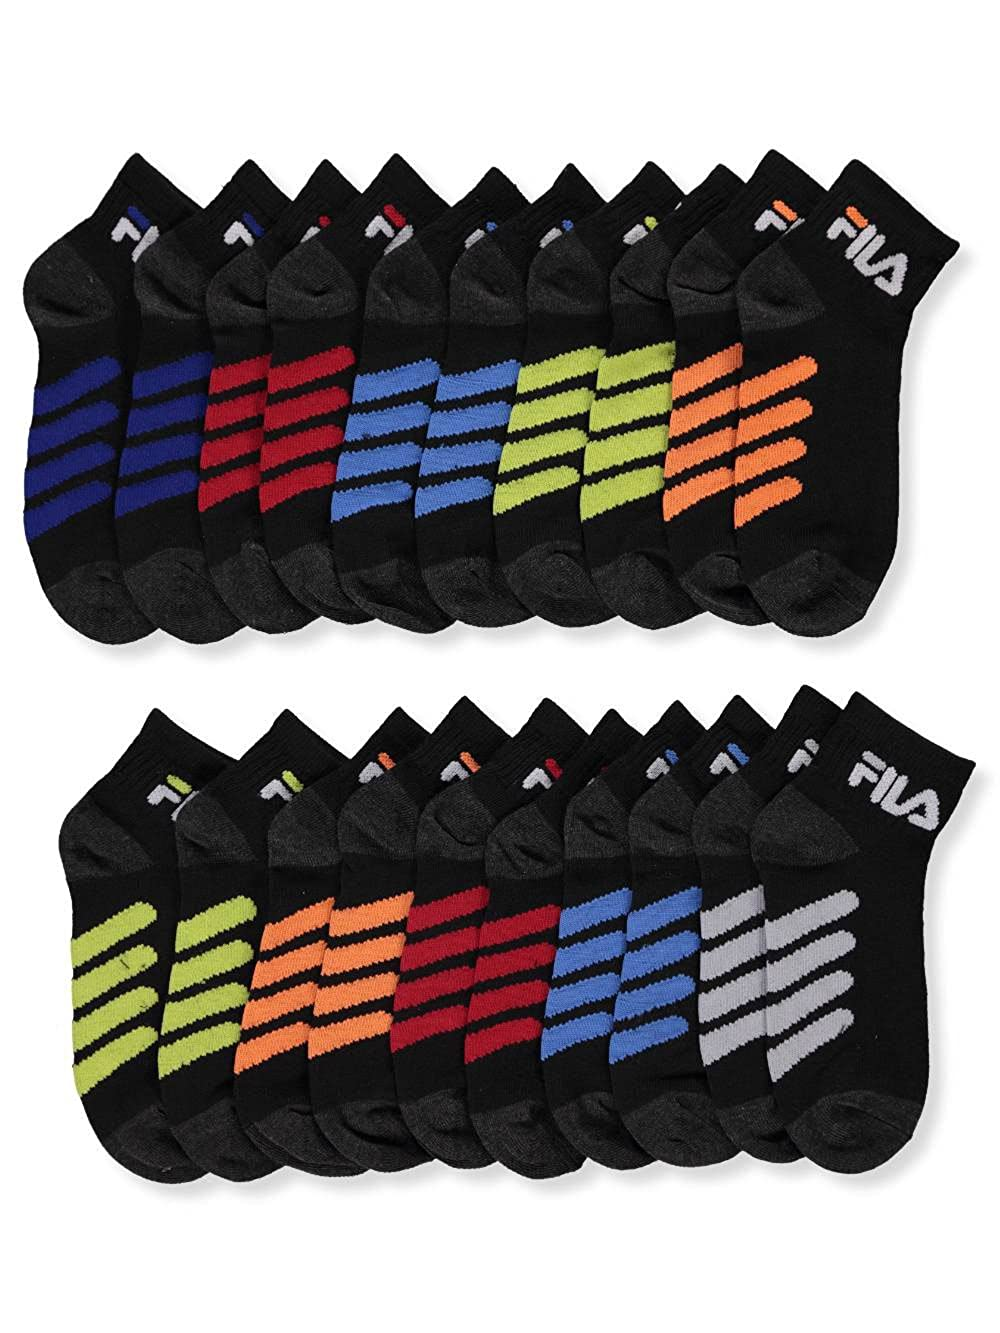 Fila Boys' 10-Pack Quarter Crew Socks 9-11/7-14 years